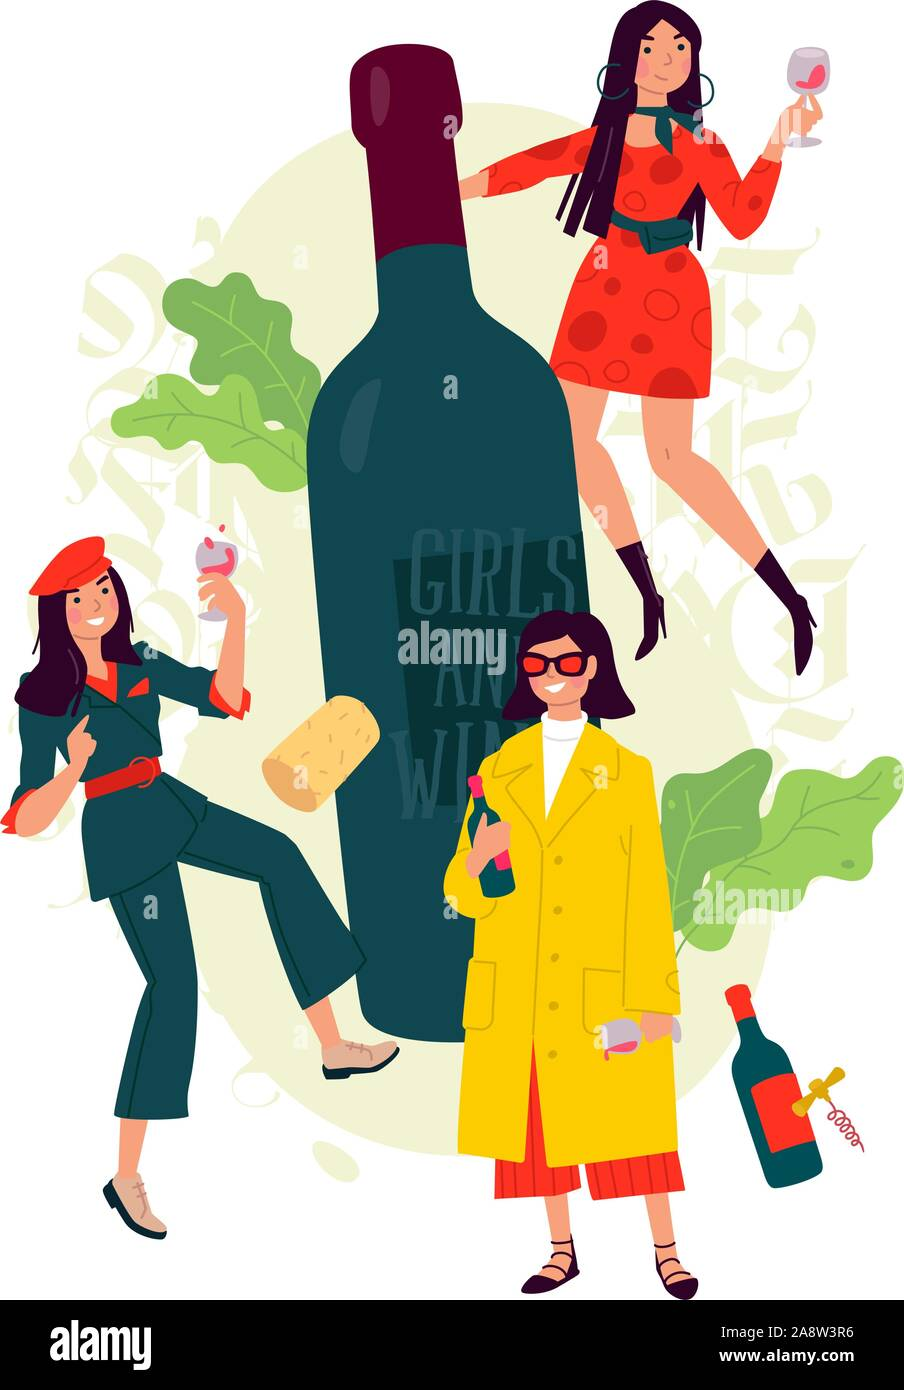 Illustration of girls with a glass of wine around the bottle. Vector. Women celebrate the holiday, have fun and relax. Party all night March 8th. Slig Stock Vector